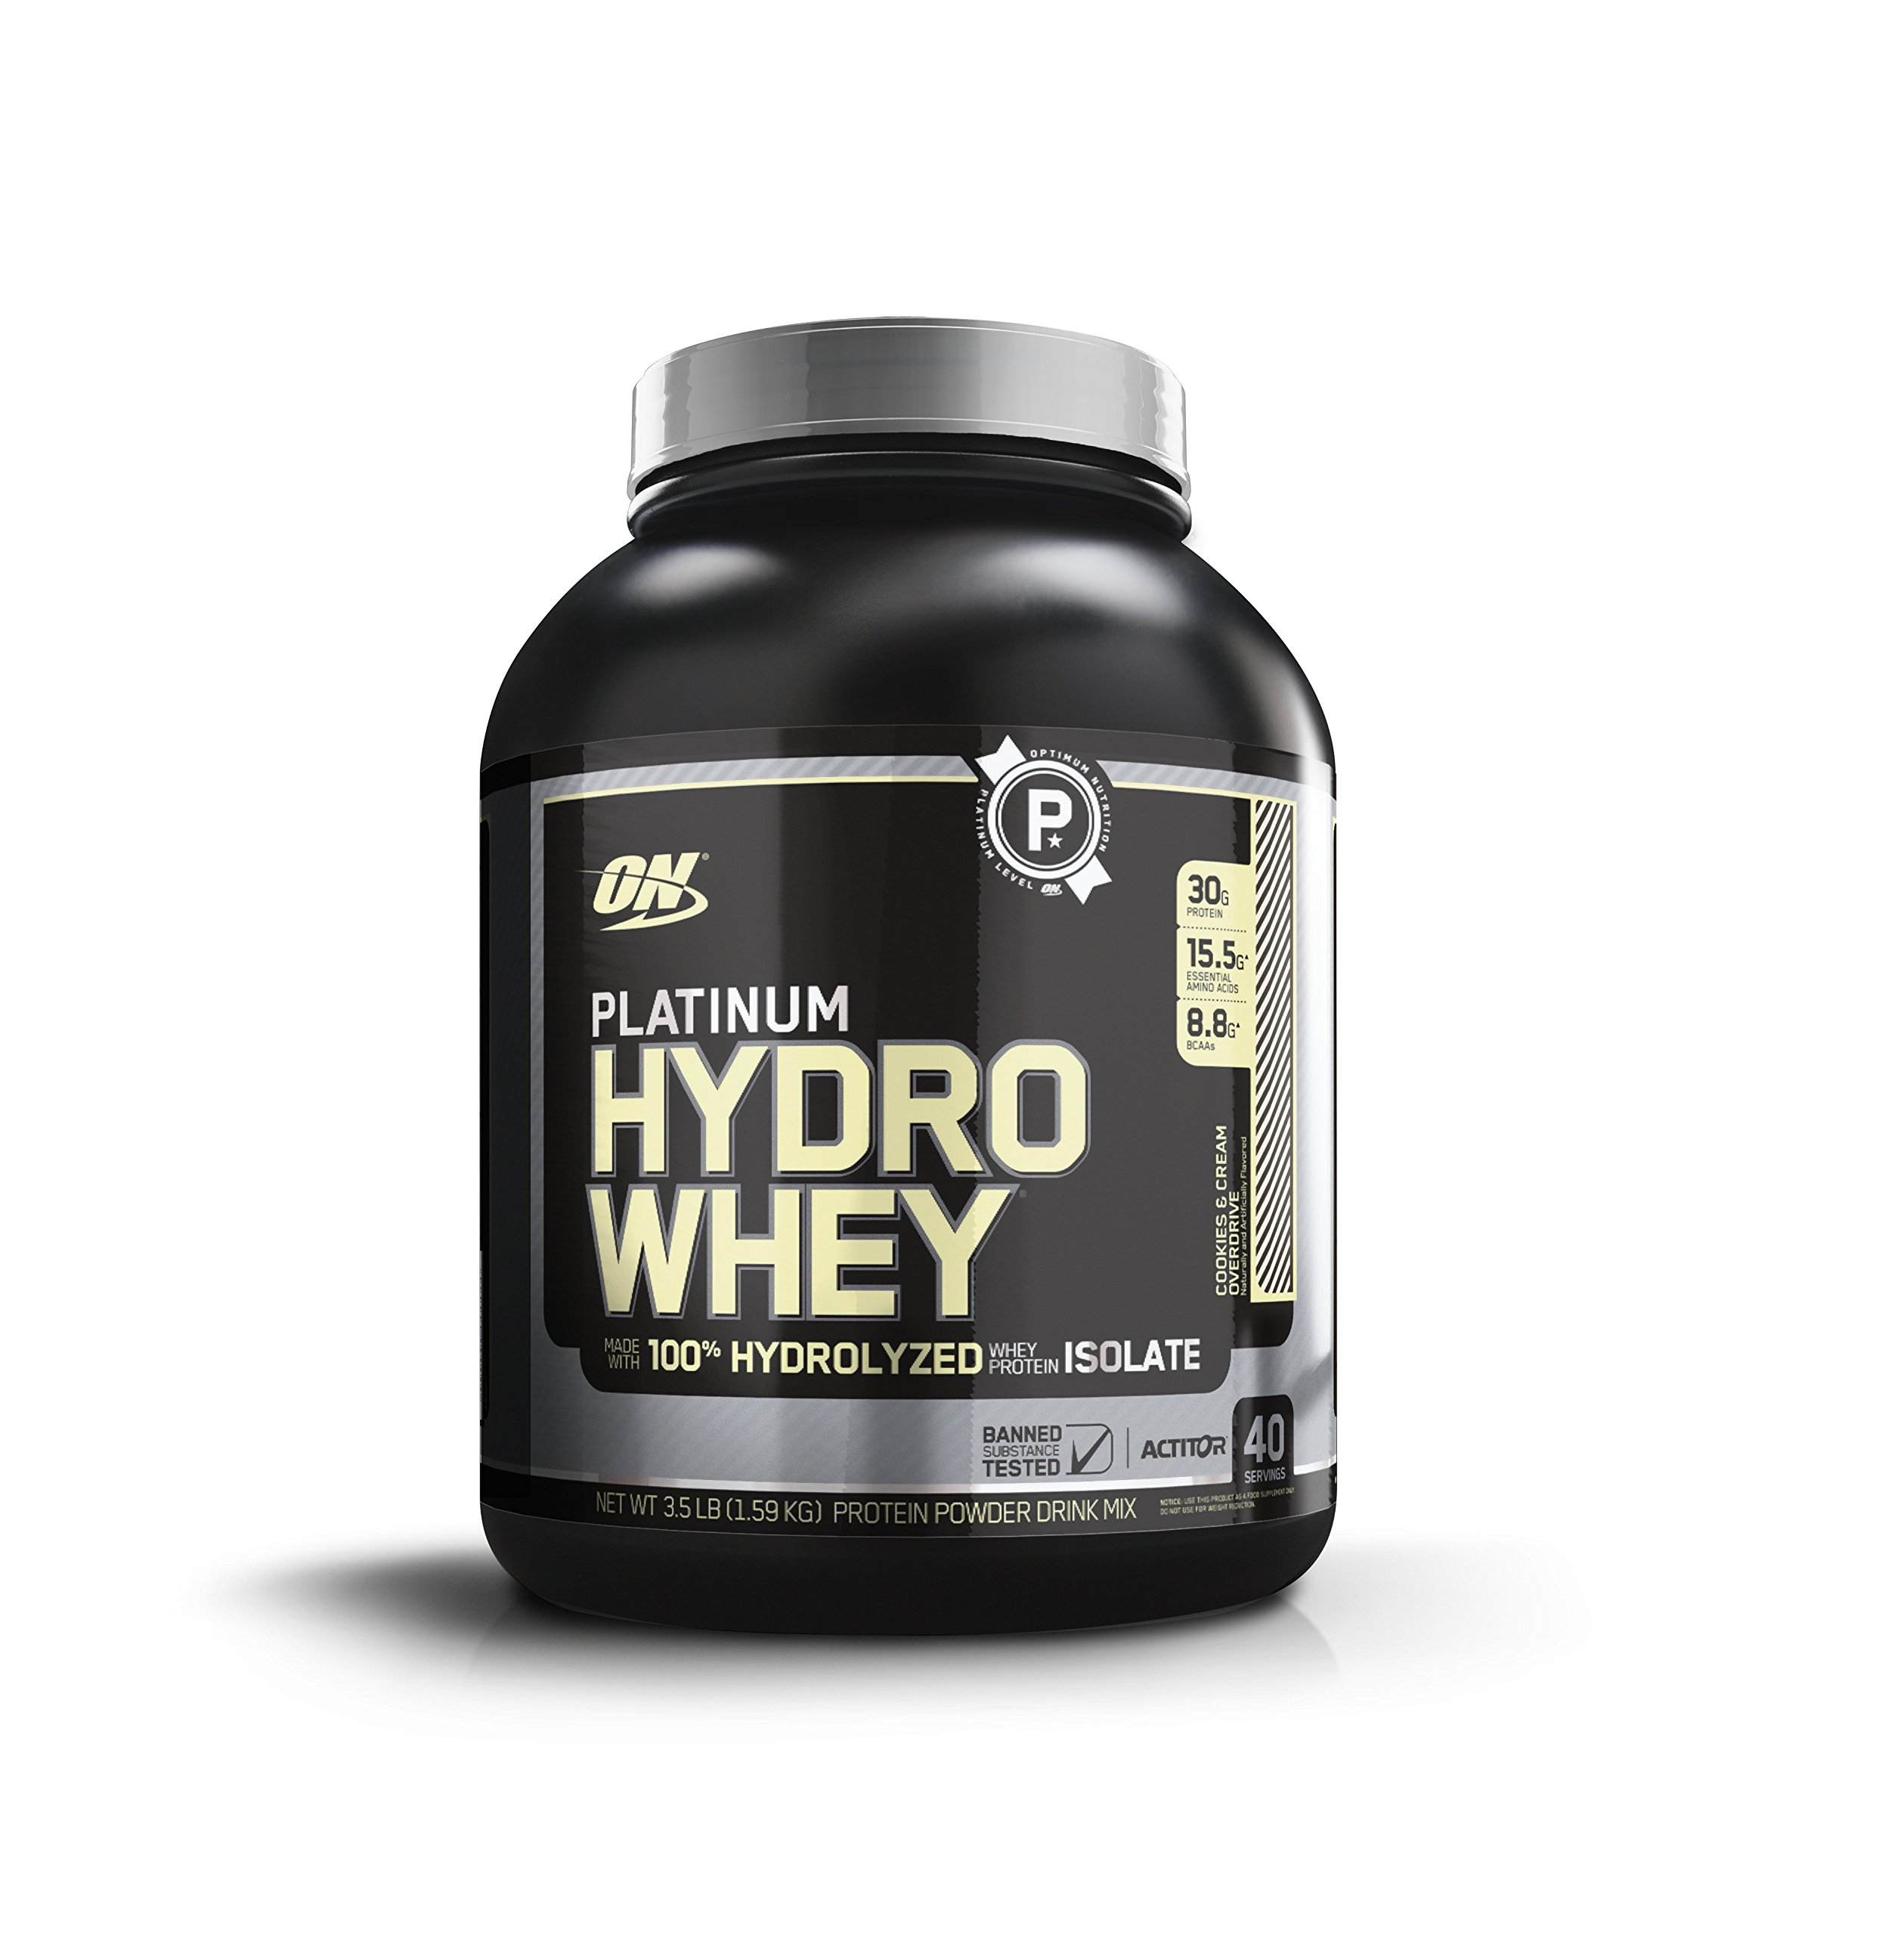 Optimum Nutrition Platinum Hydrowhey Protein Powder, 100% Hydrolyzed Whey Protein Isolate Powder, Flavor: Cookies & Cream Overdrive, 3.5 Pounds